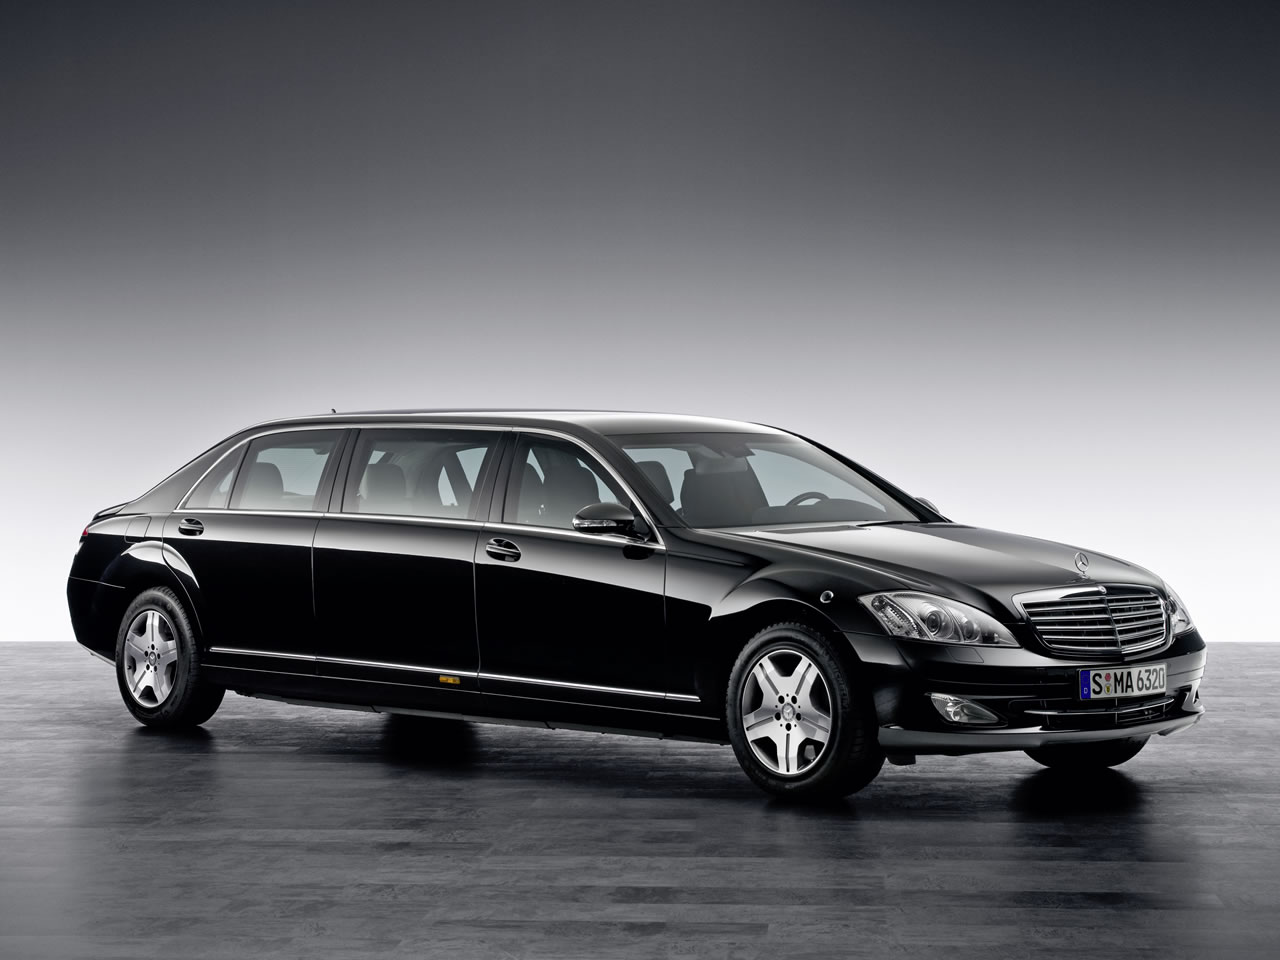 The mercedes benz s600 pullman guard presidential limousines for S600 mercedes benz